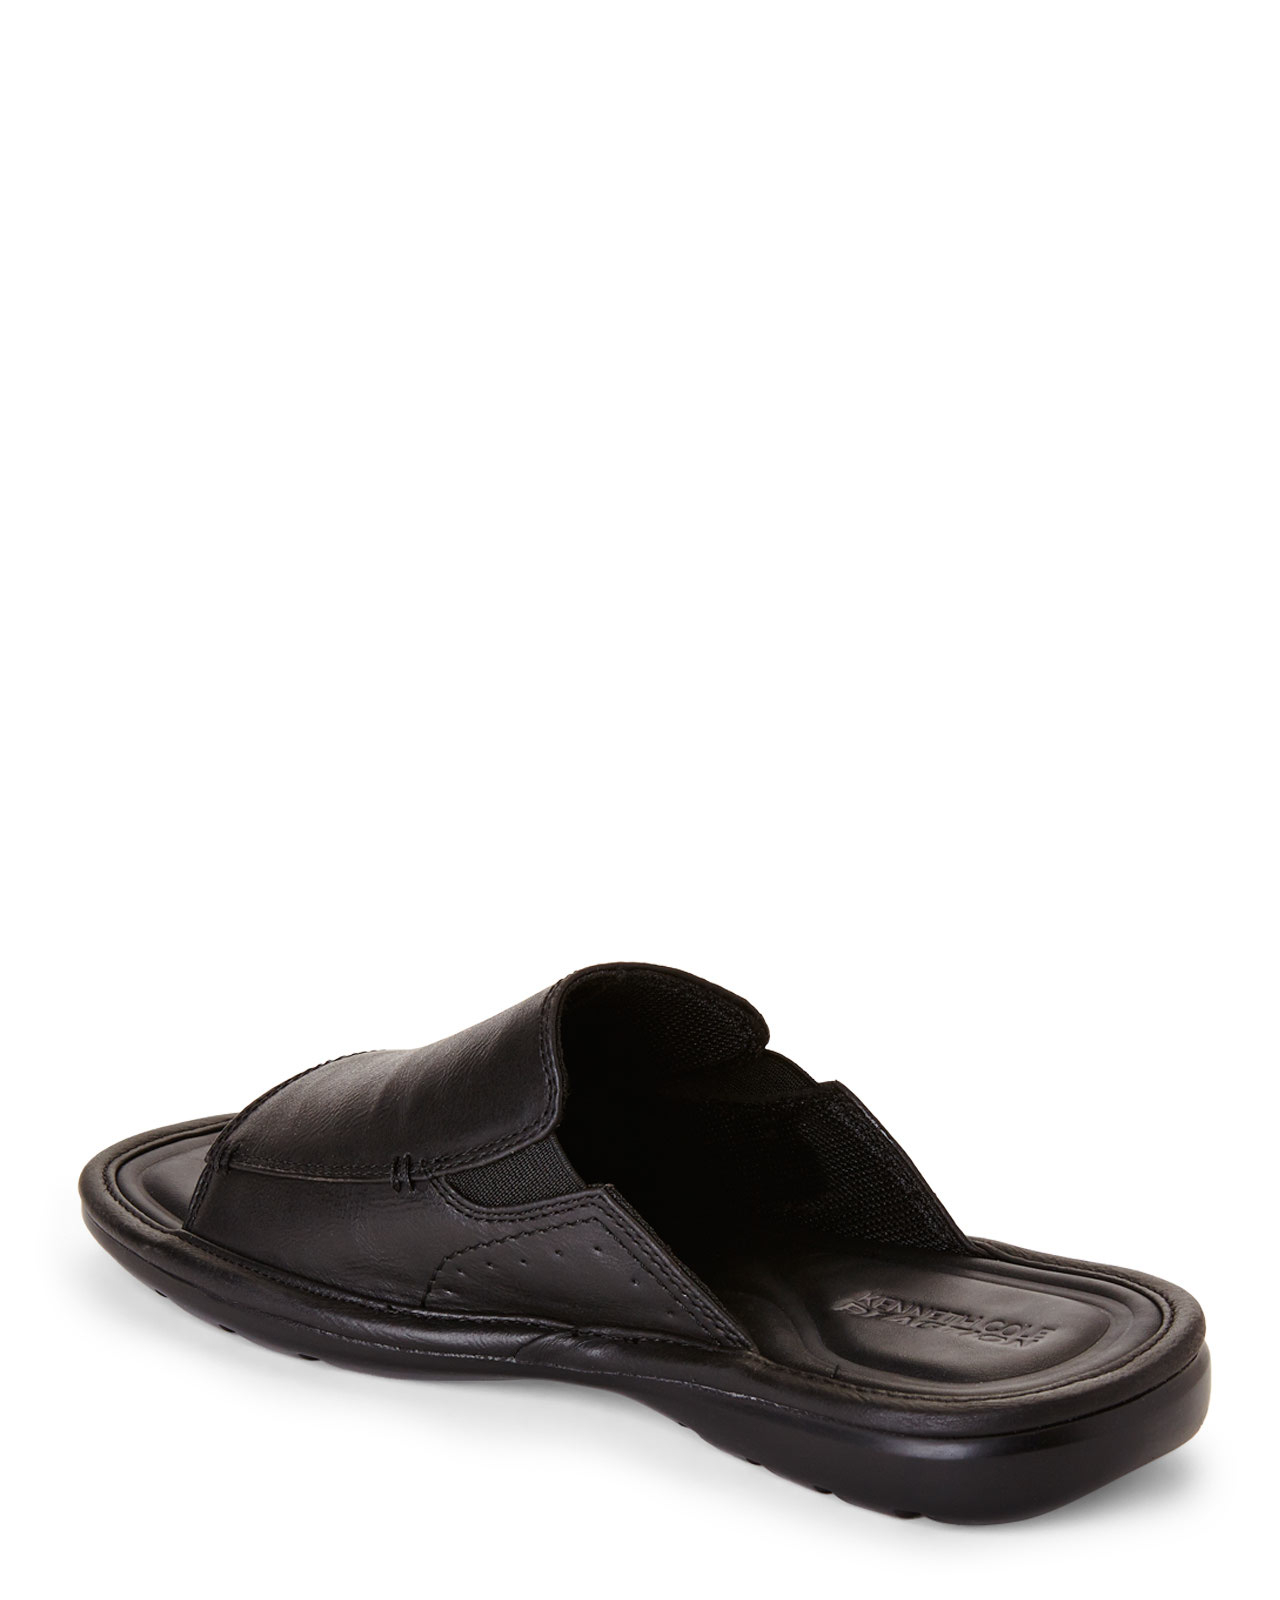 Kenneth Cole Reaction Black Day Dreaming Sandals In Black